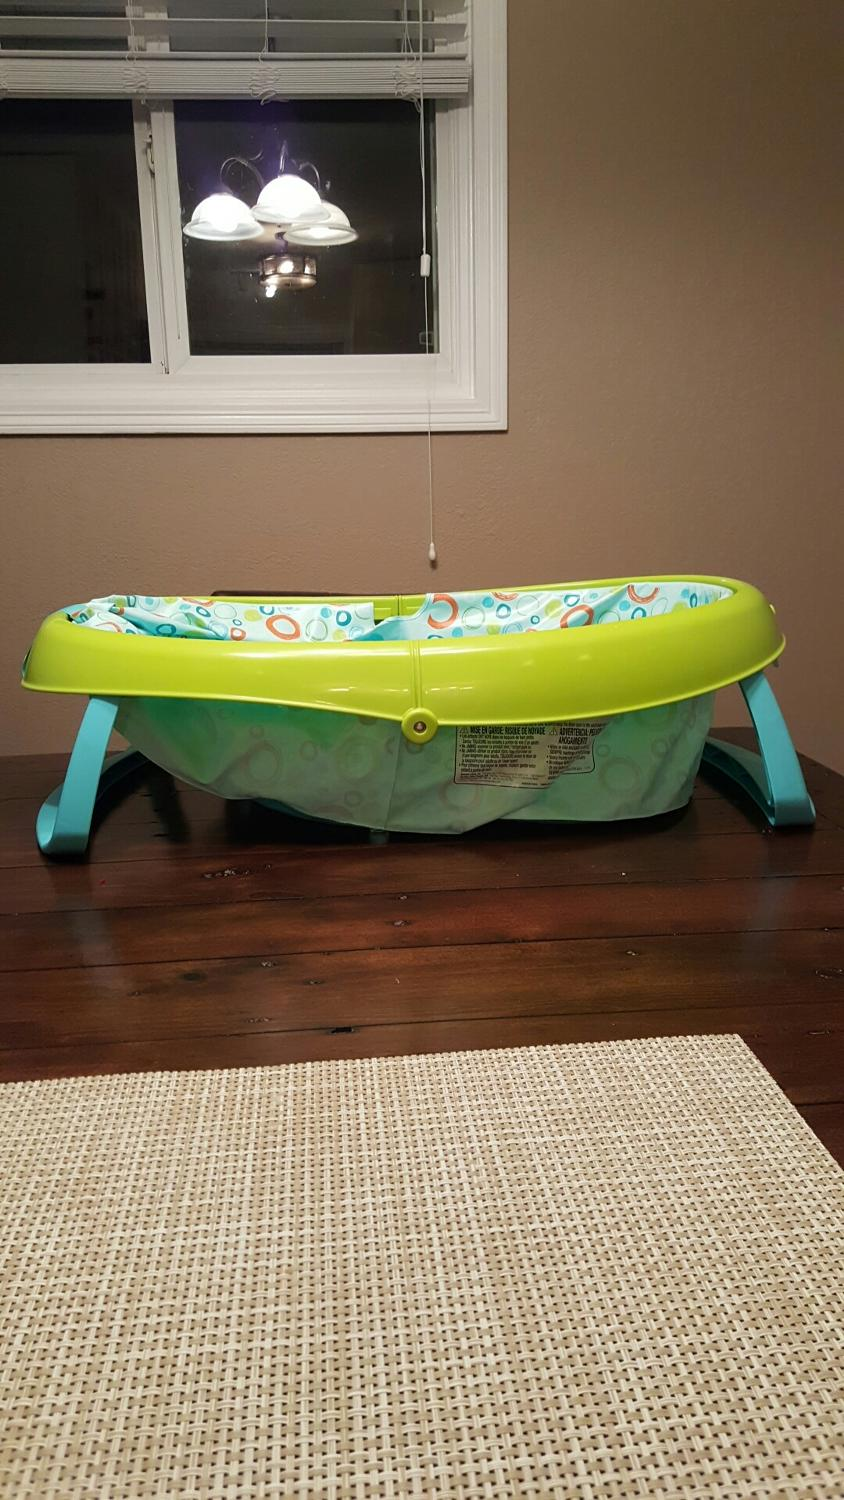 Collapsible Baby Bathtub. art collapsible baby bath. boon naked 2 ...